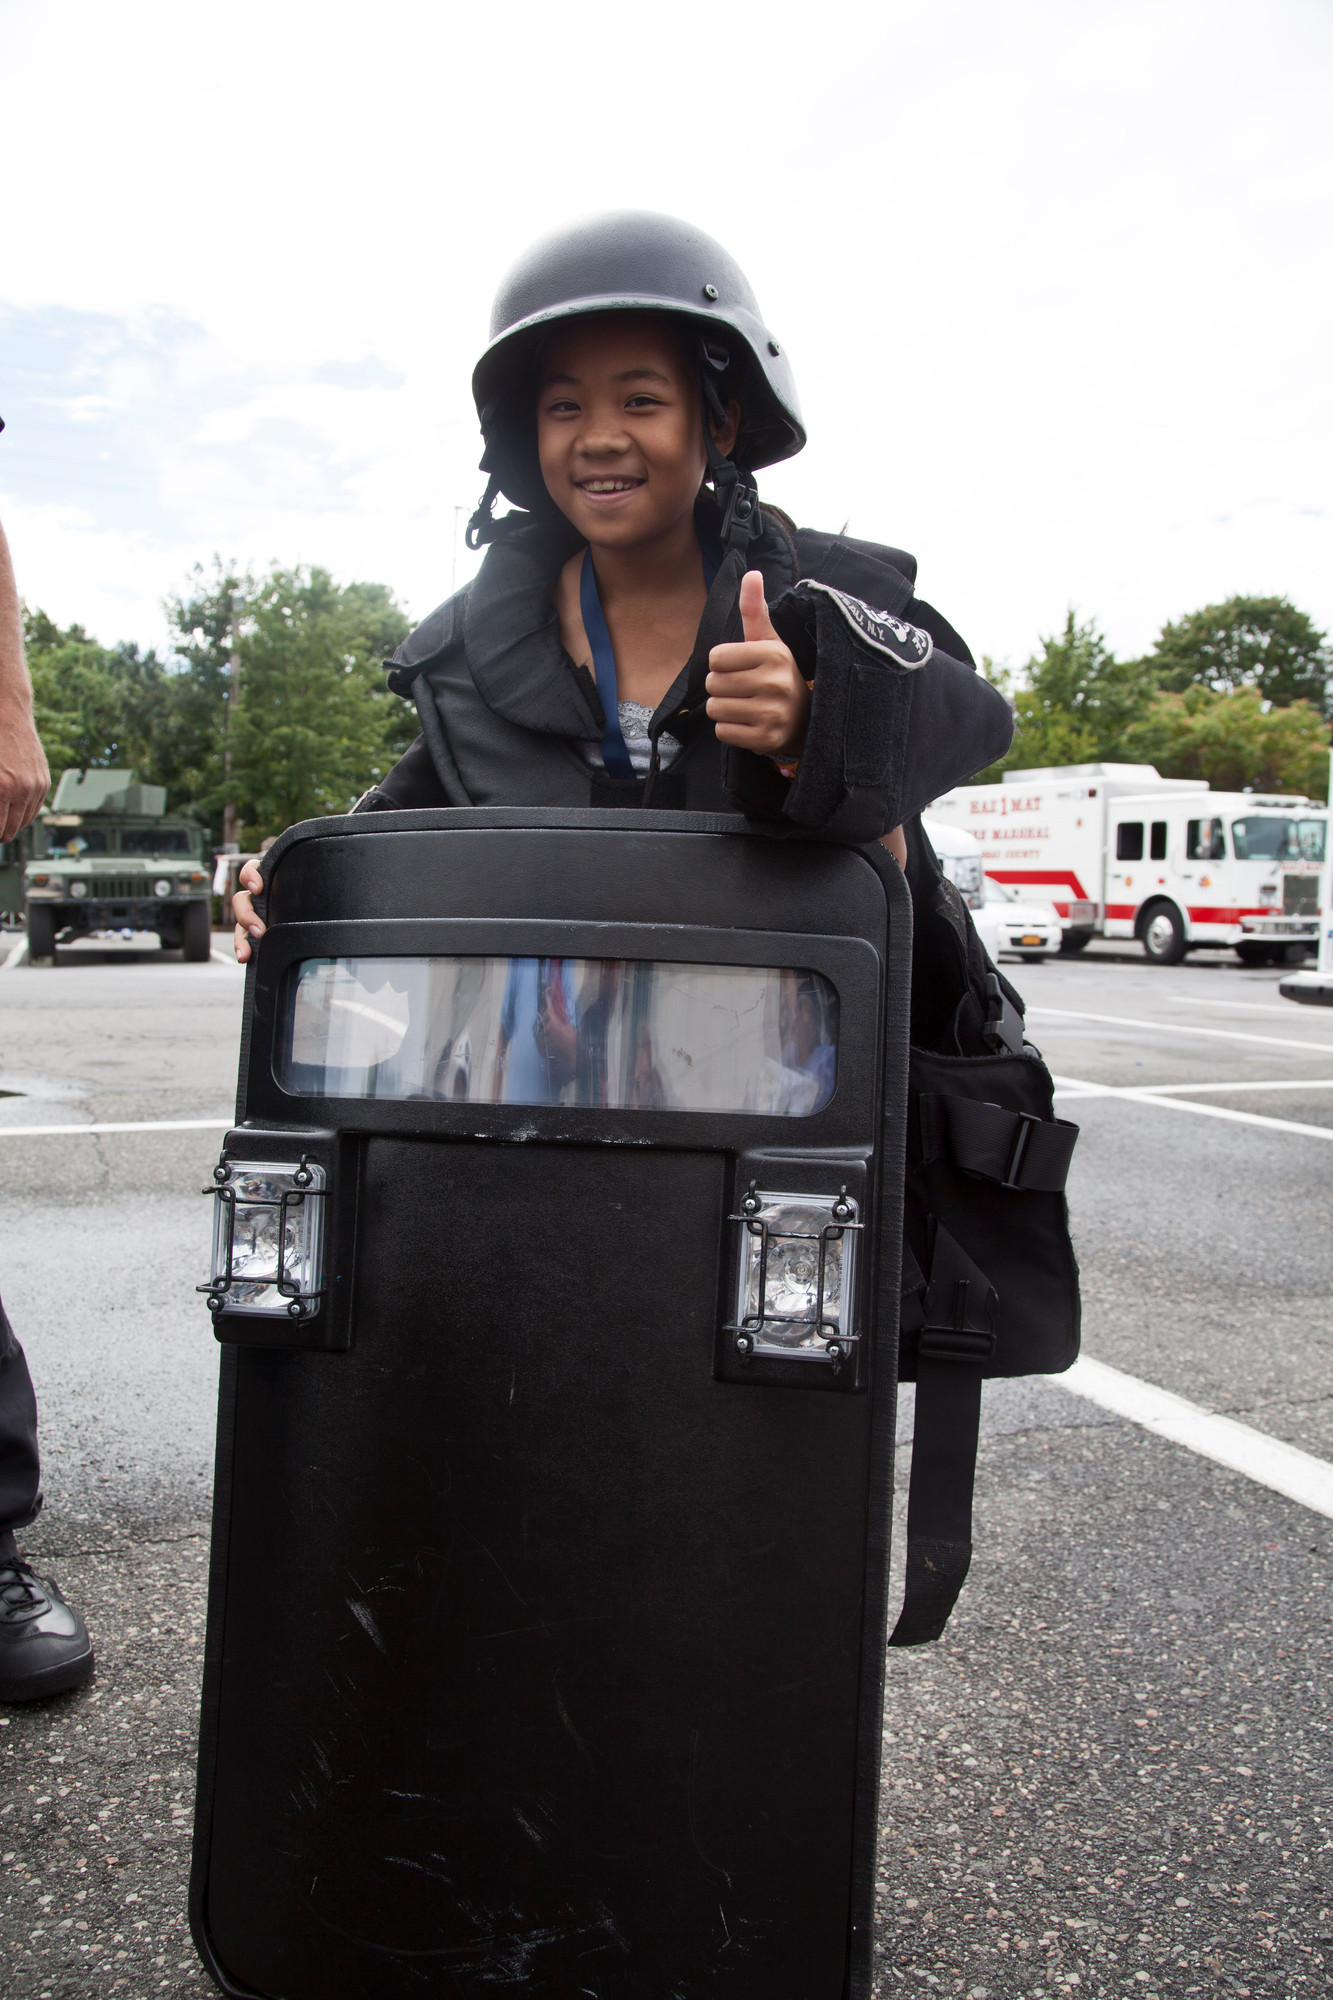 Valerie Hoffer, 10, donned some police riot gear.